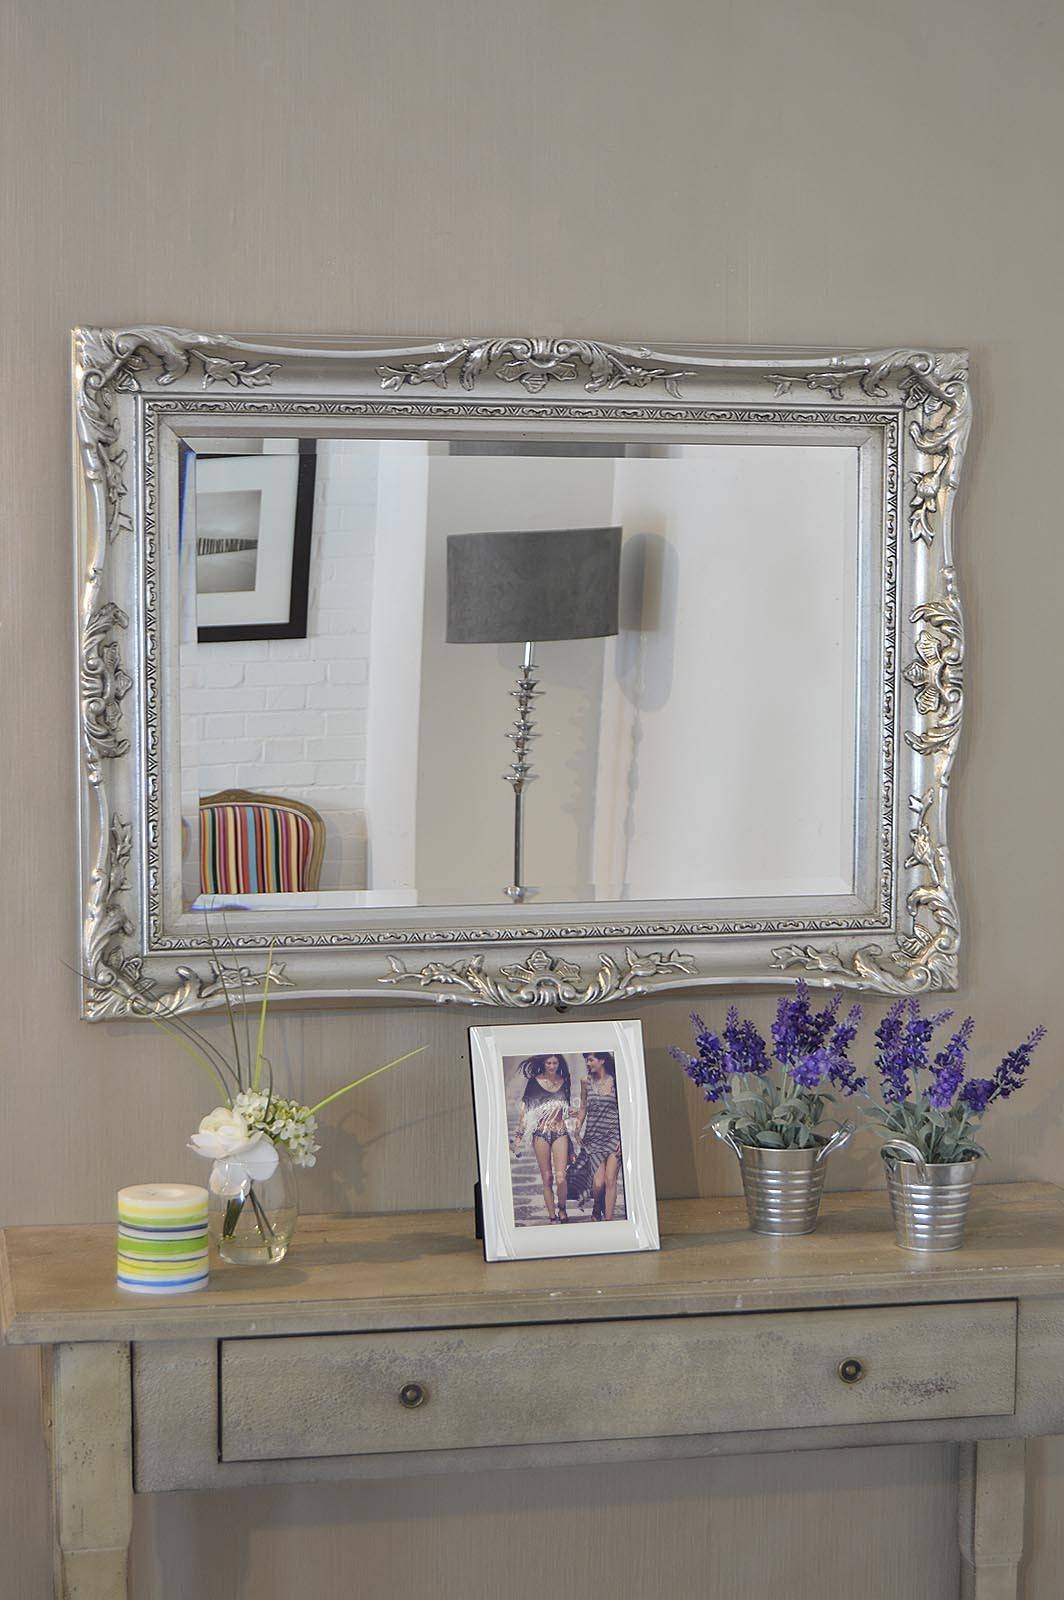 Large Antique Wall Mirror Ornate Frame Antique Ornate Wall Mirrors pertaining to Antique Style Wall Mirrors (Image 16 of 25)